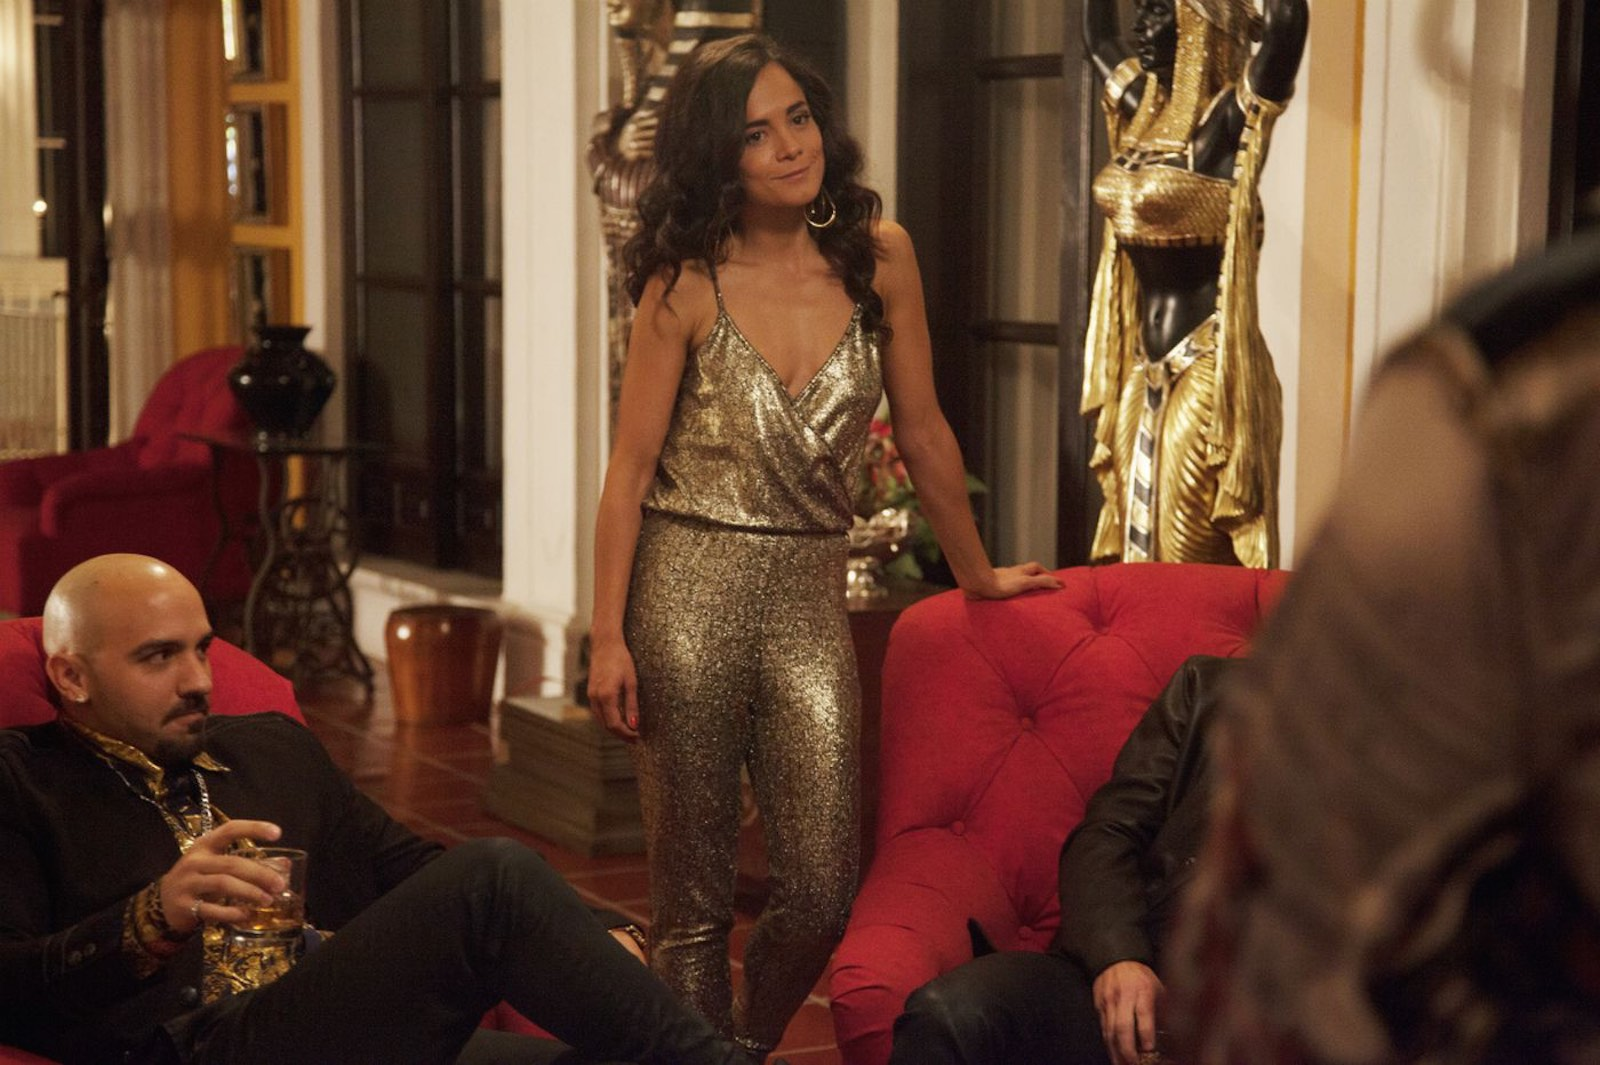 'Queen of the South' left us with our jaws open wide at the end of season 4. So what's next for Teresa Mendoza? Here's everything we know about season 5.